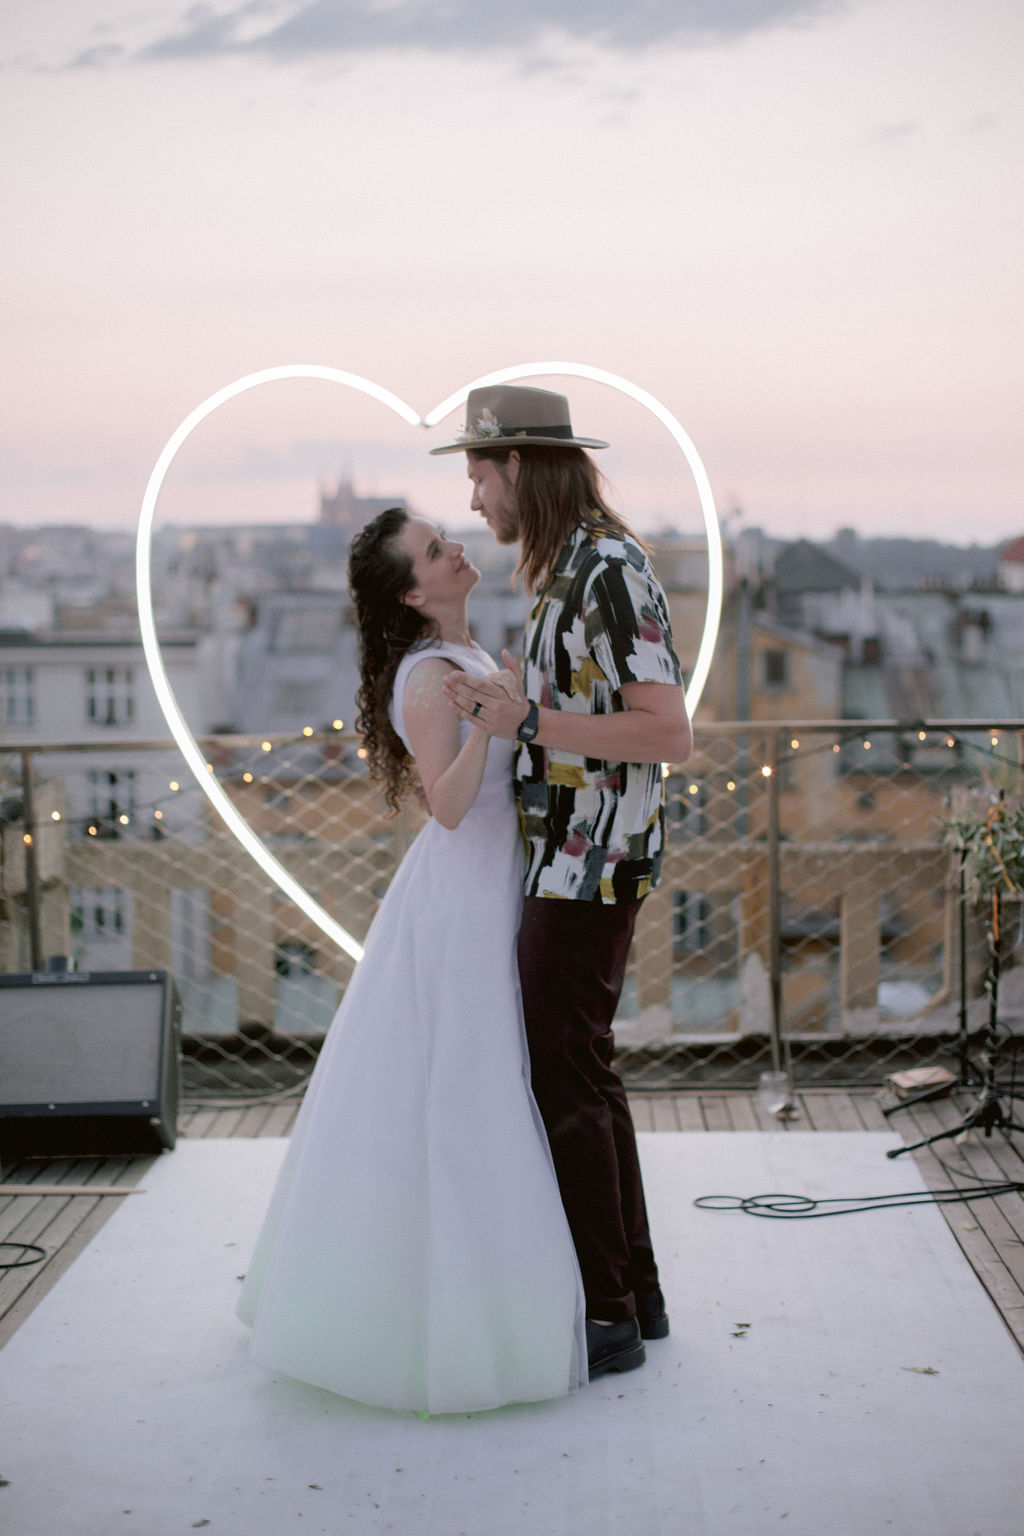 Neon Hear Wedding Arch | Prague Hipster Rooftop Wedding